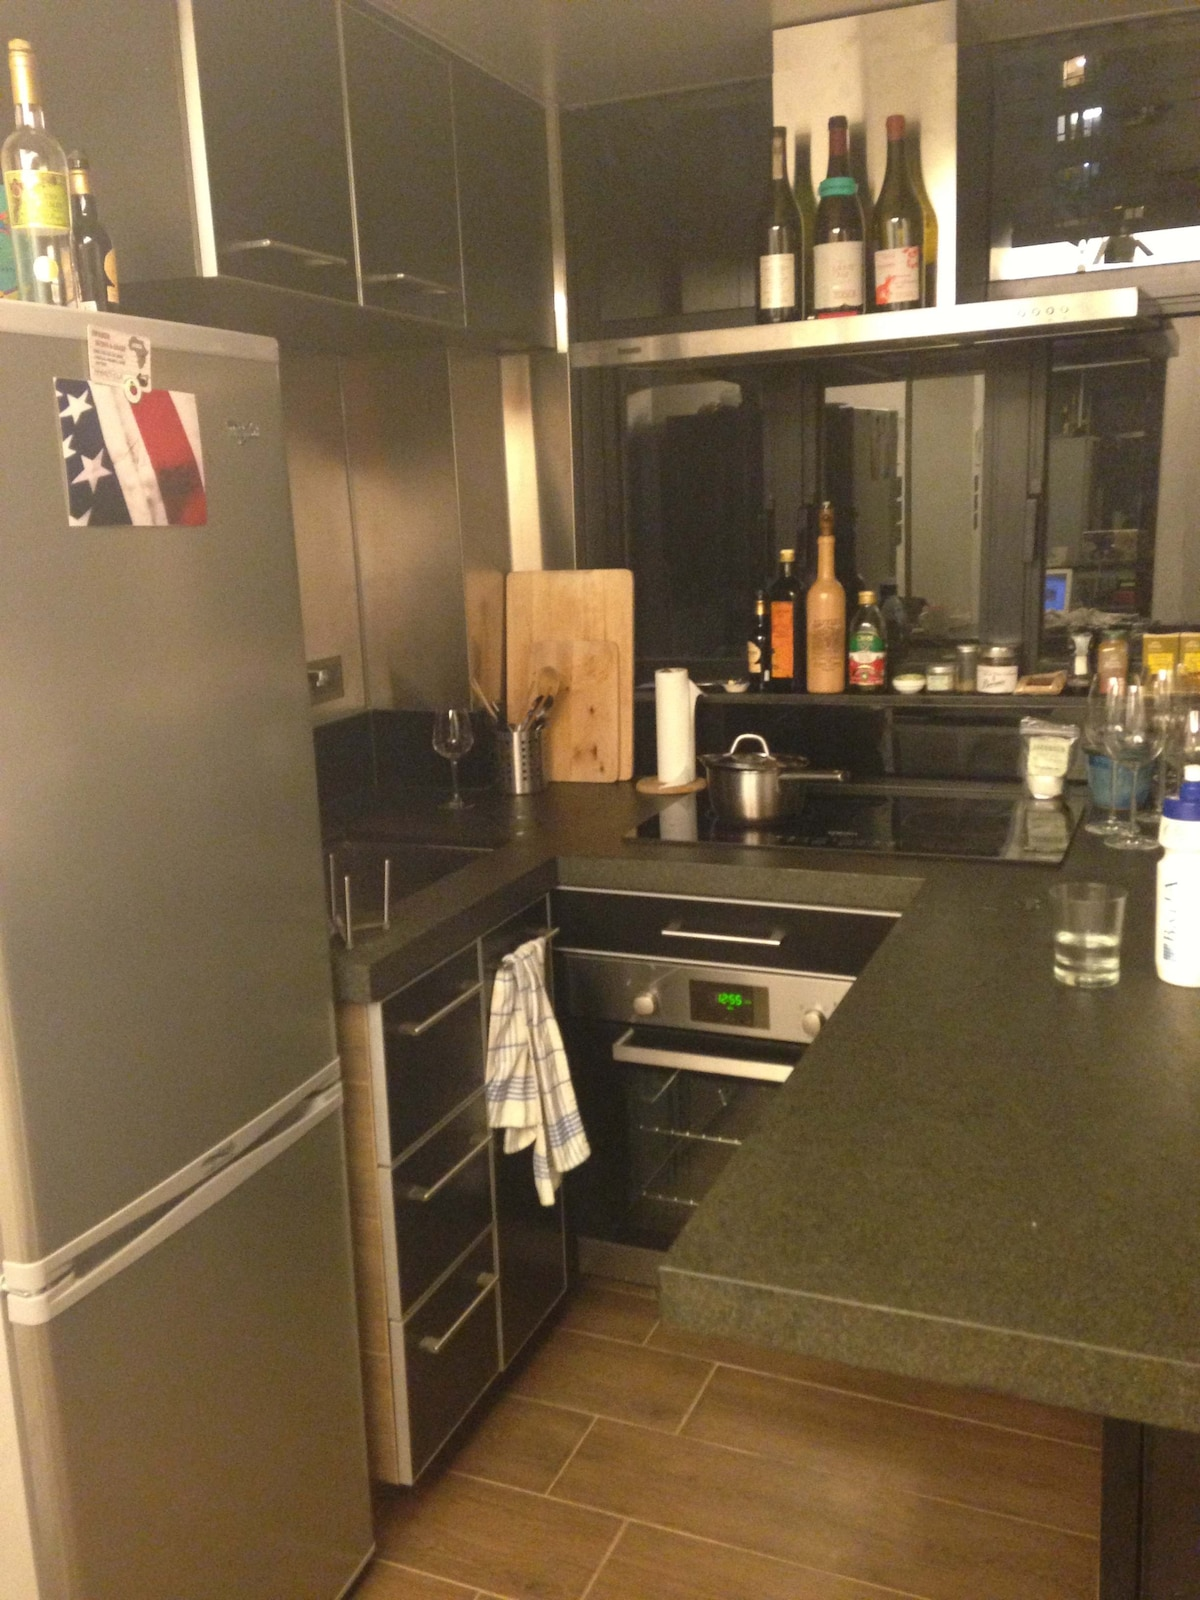 Flat for rent 10 min from Central